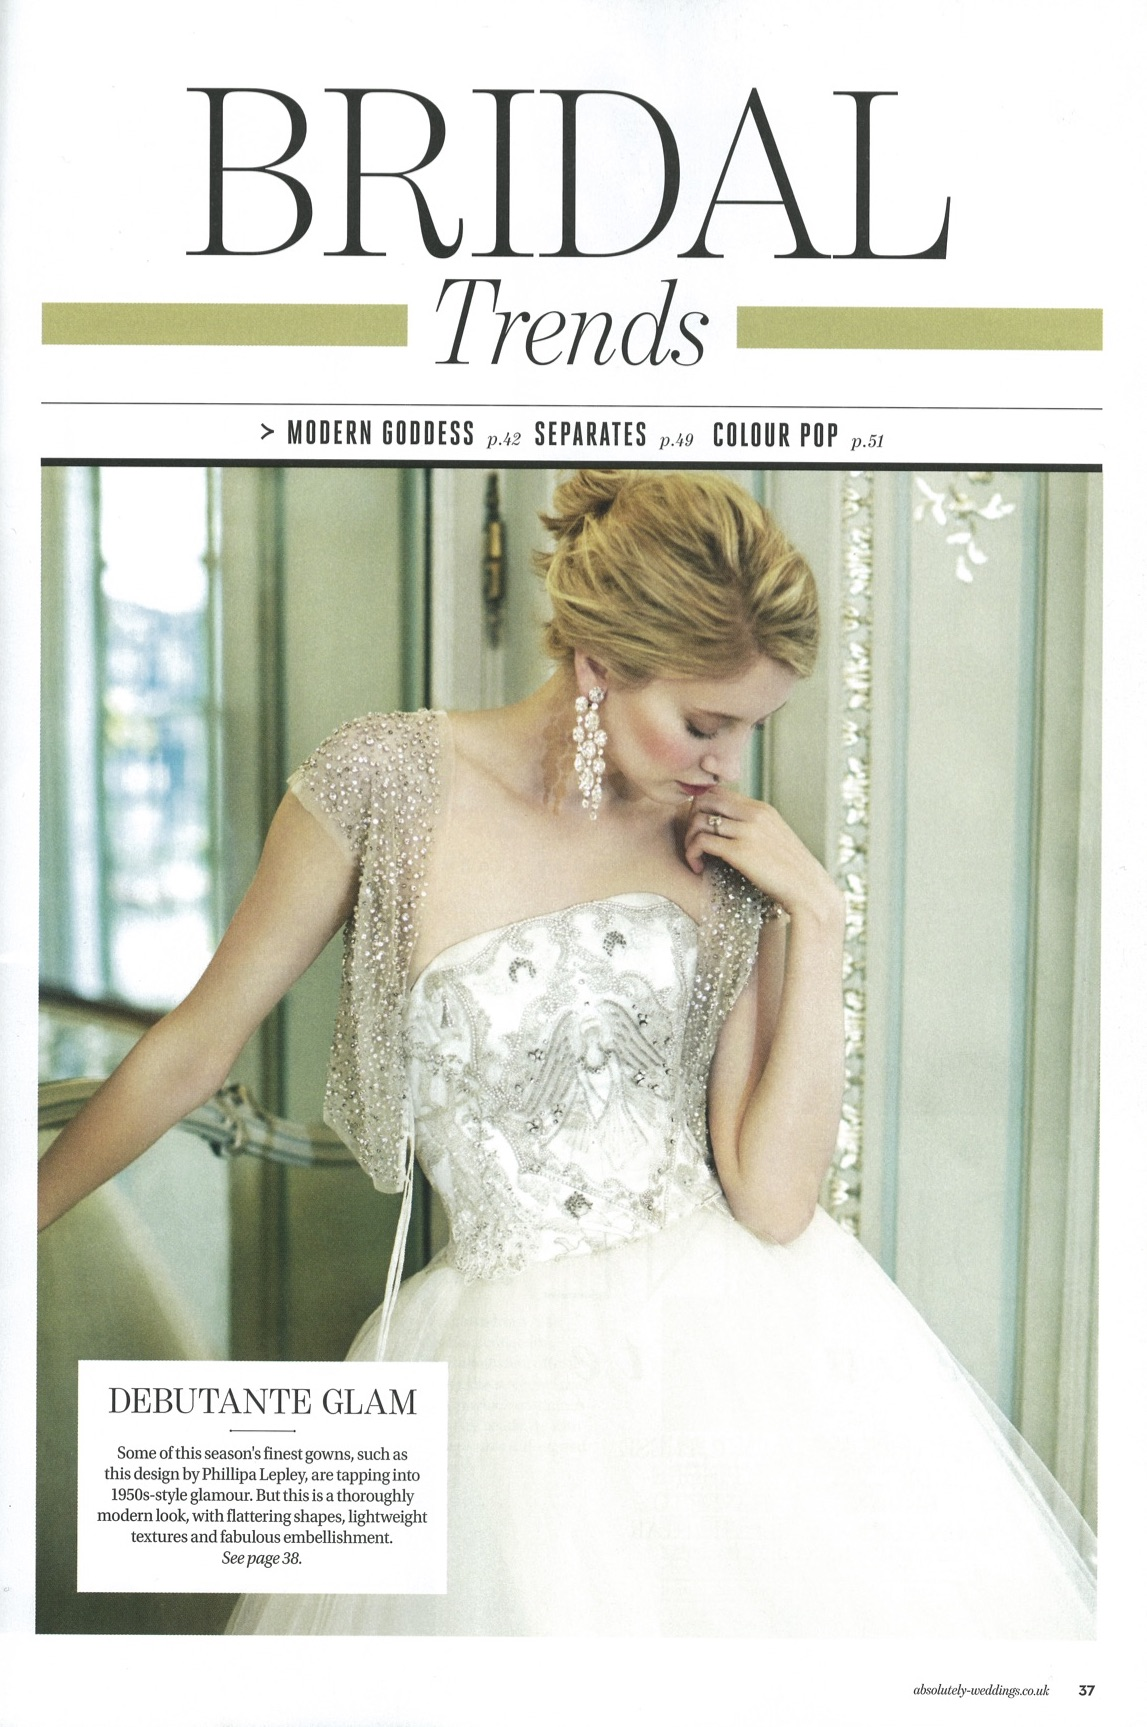 PHILLIPA LEPLEY FEATURED IN ABSOLUTELY WEDDINGS MAGAZINE